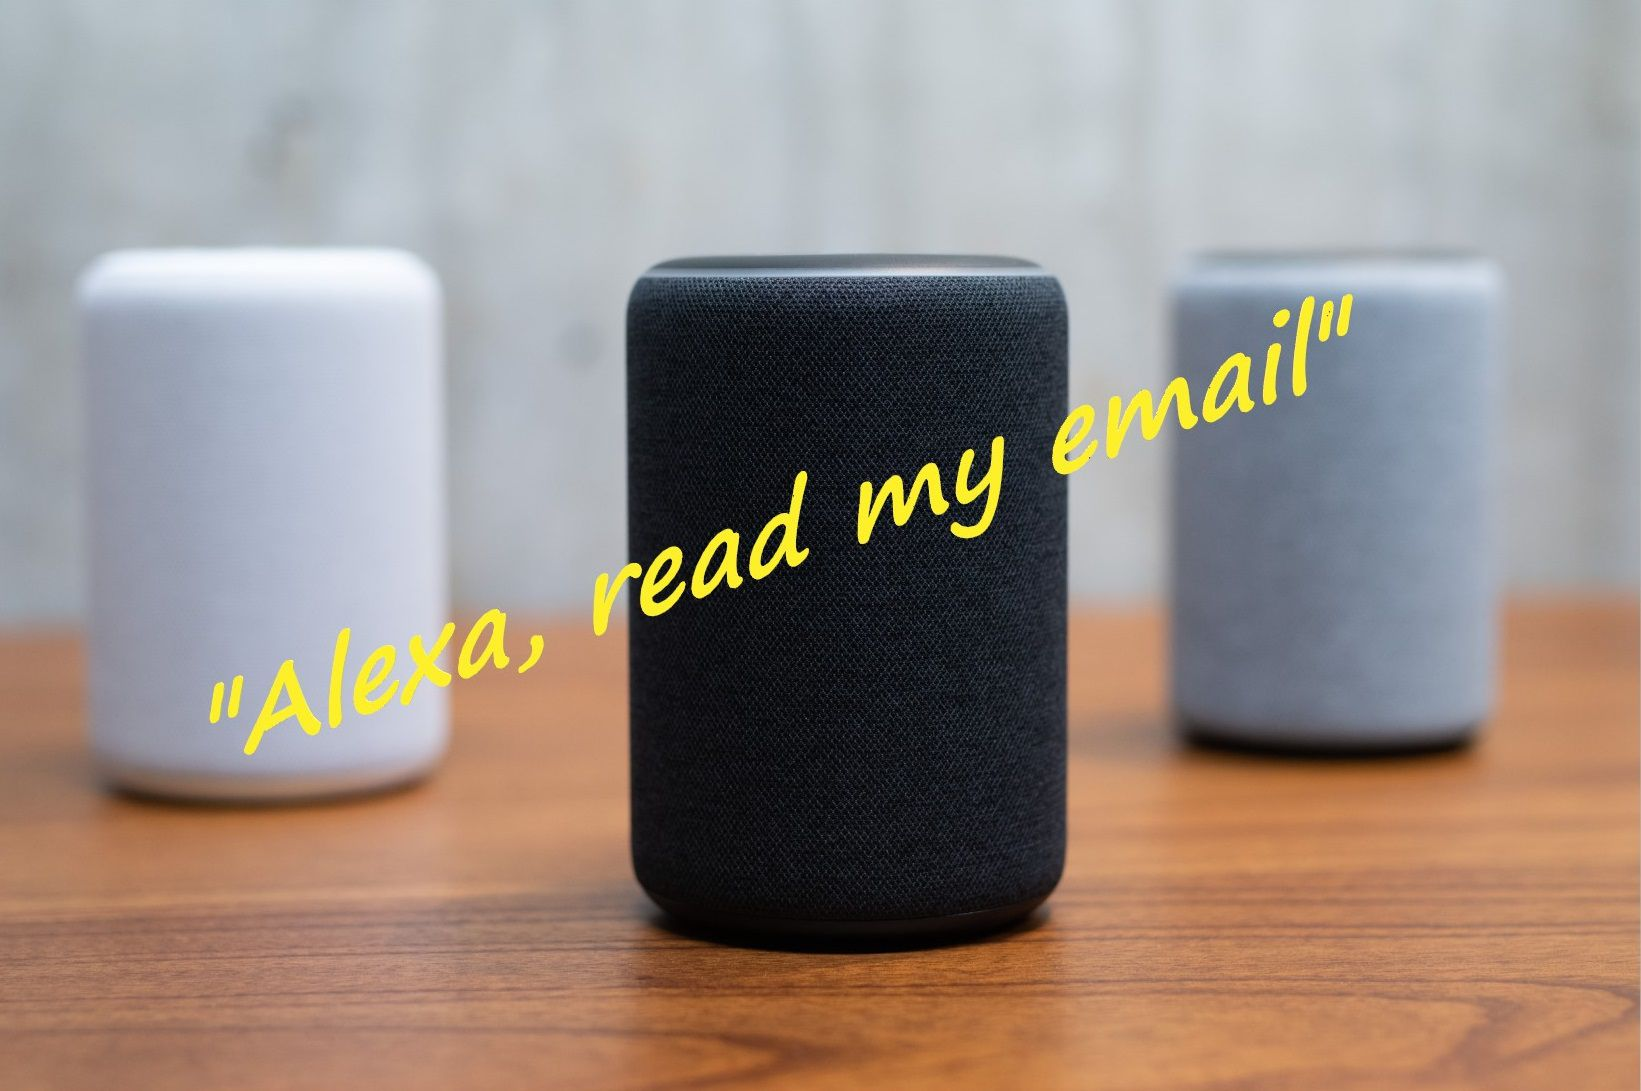 Check Your Email With Alexa